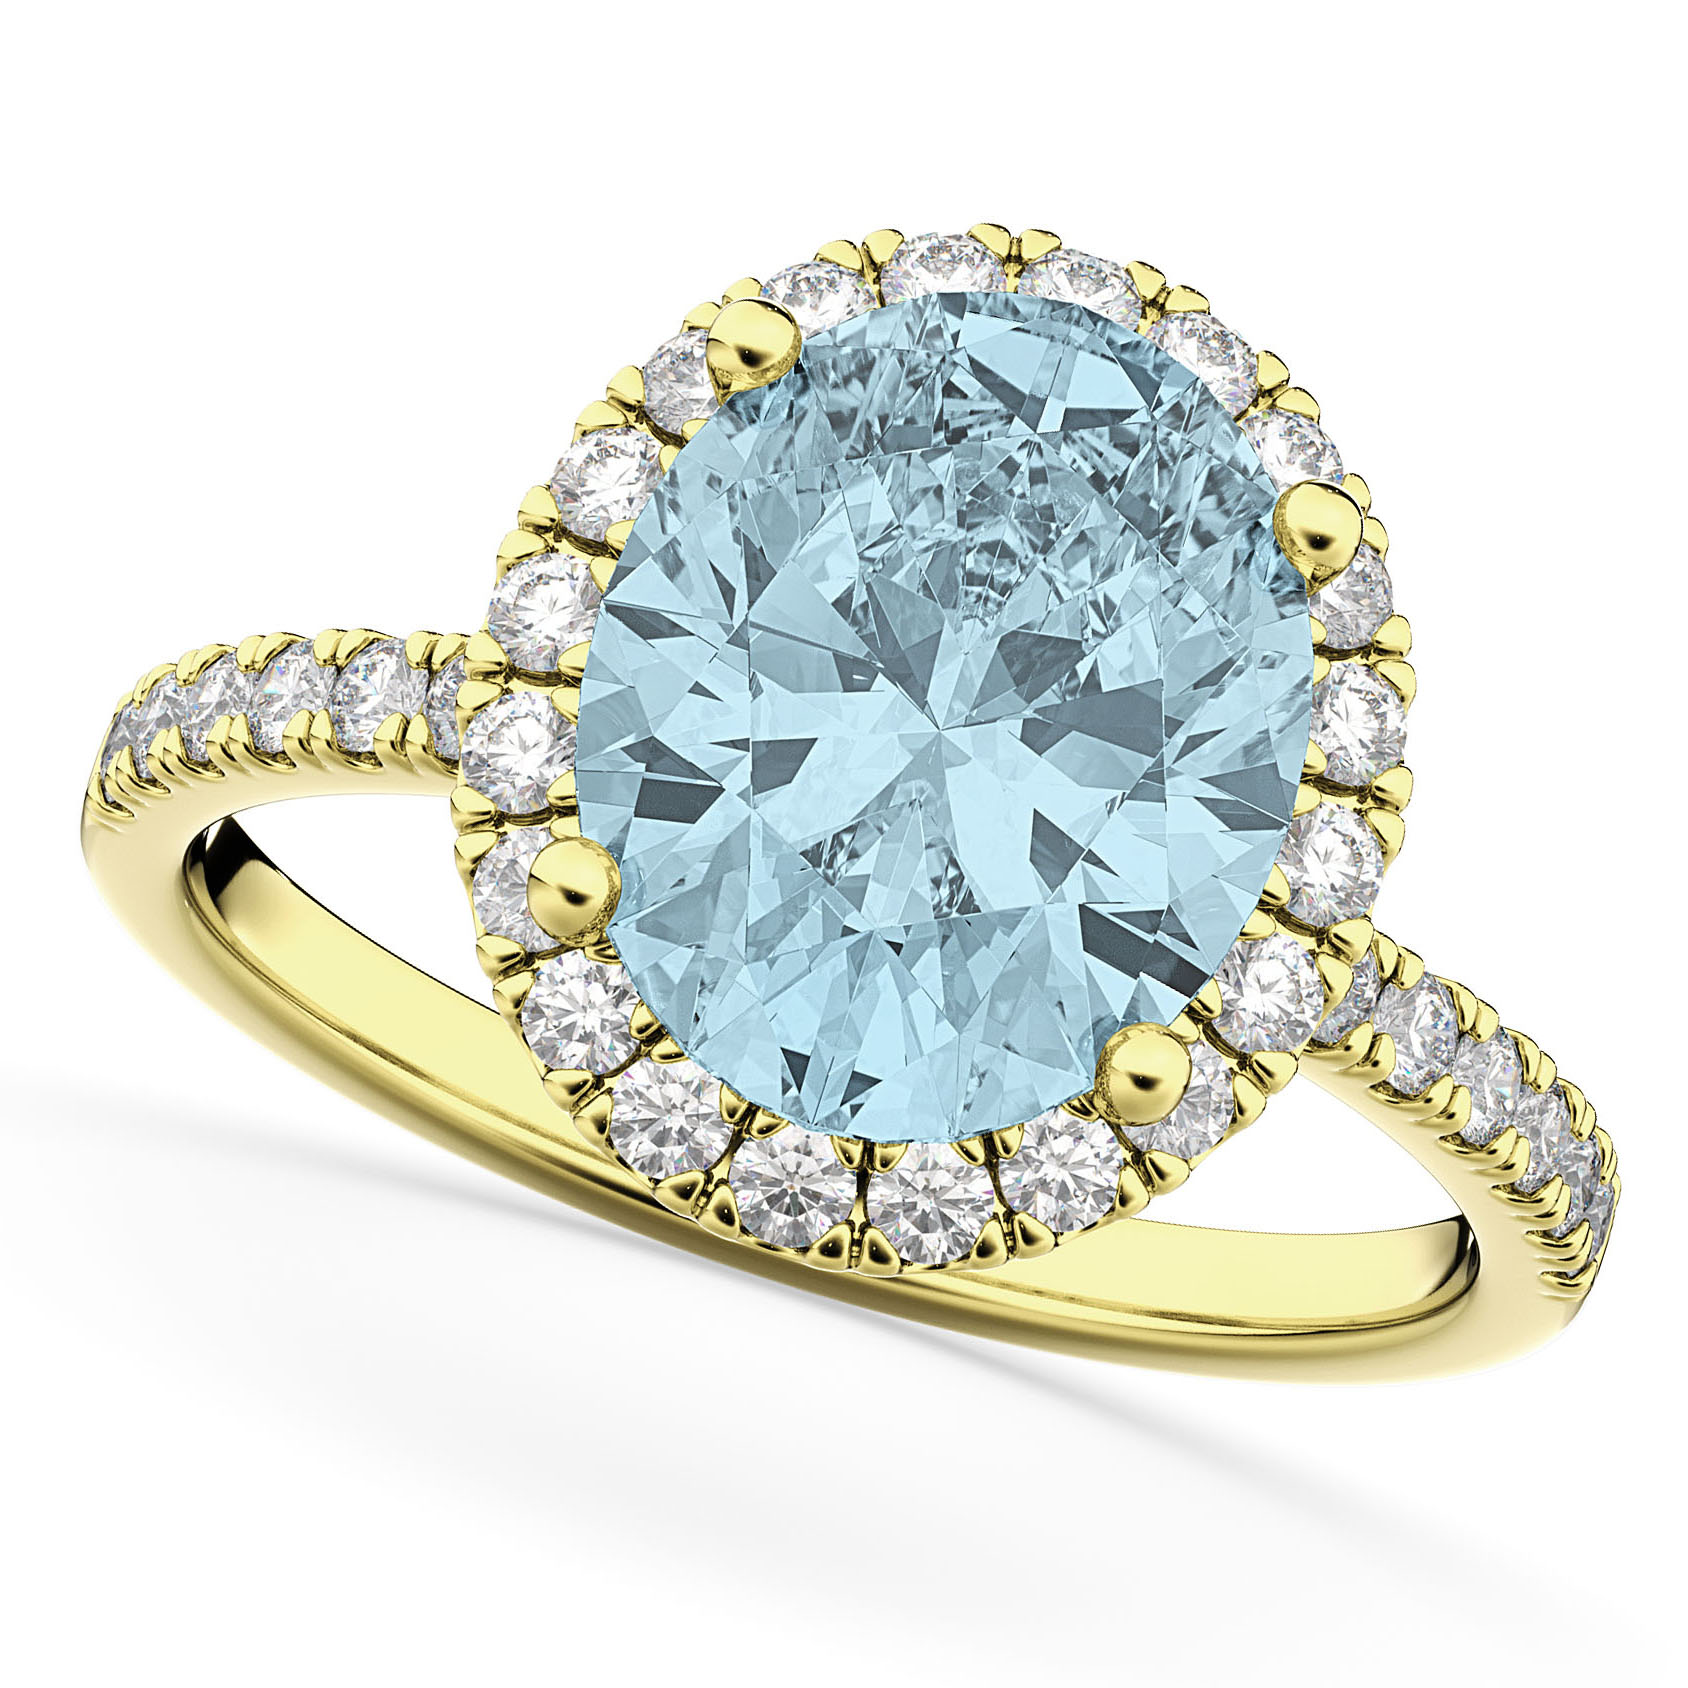 Oval Cut Halo Aquamarine & Diamond Engagement Ring 14K Yellow Gold 2.76ct